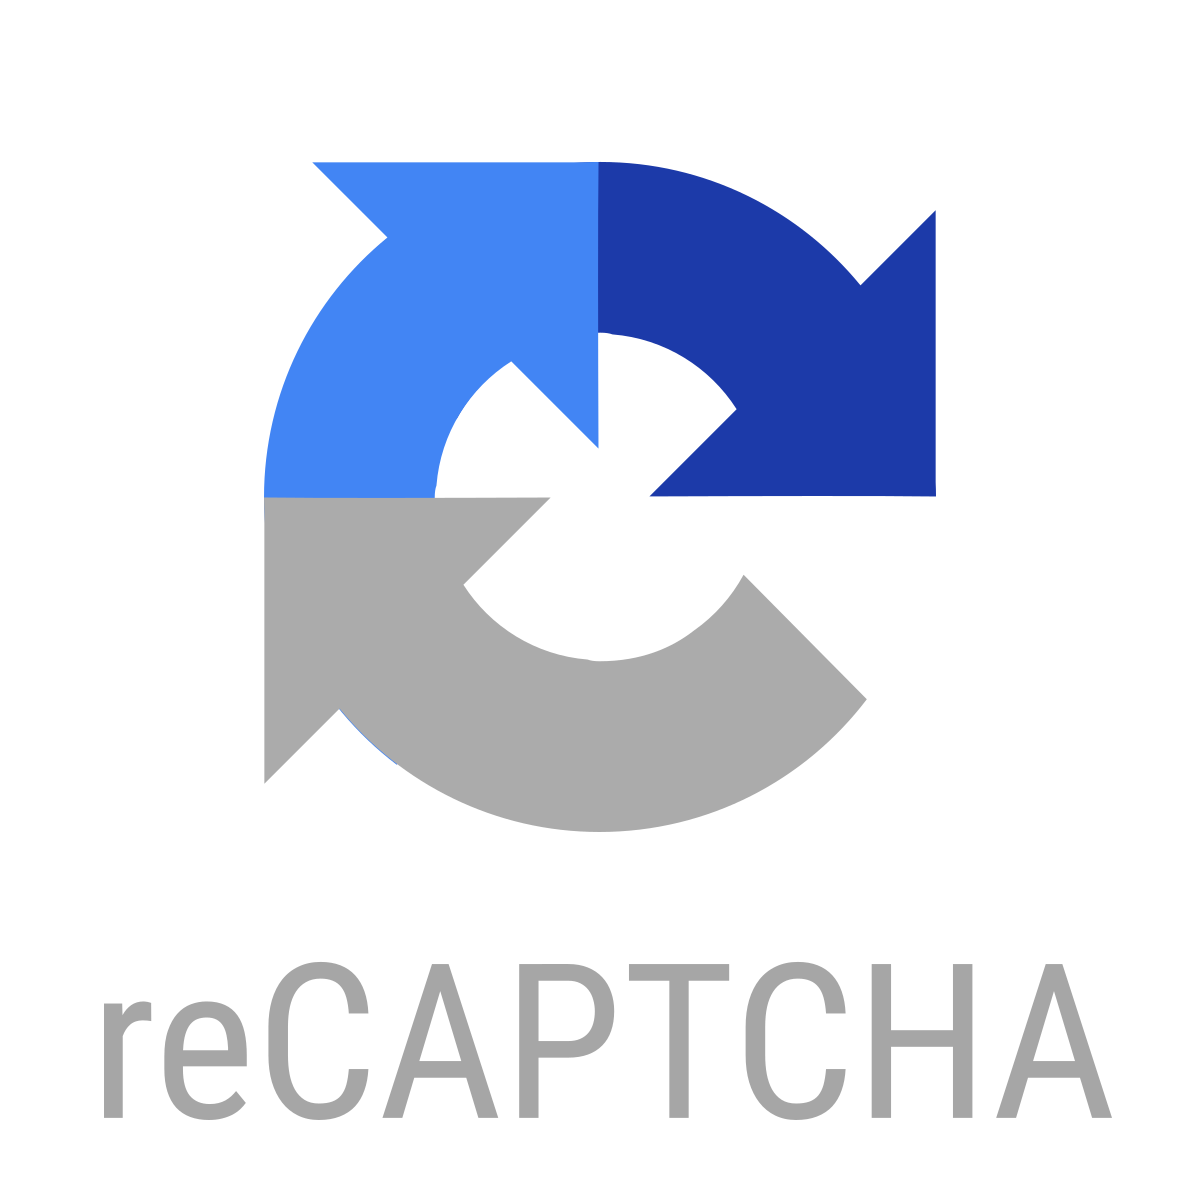 reCAPTCHA - How To Avoid Website Spam - Anti Spam Software - Web Help